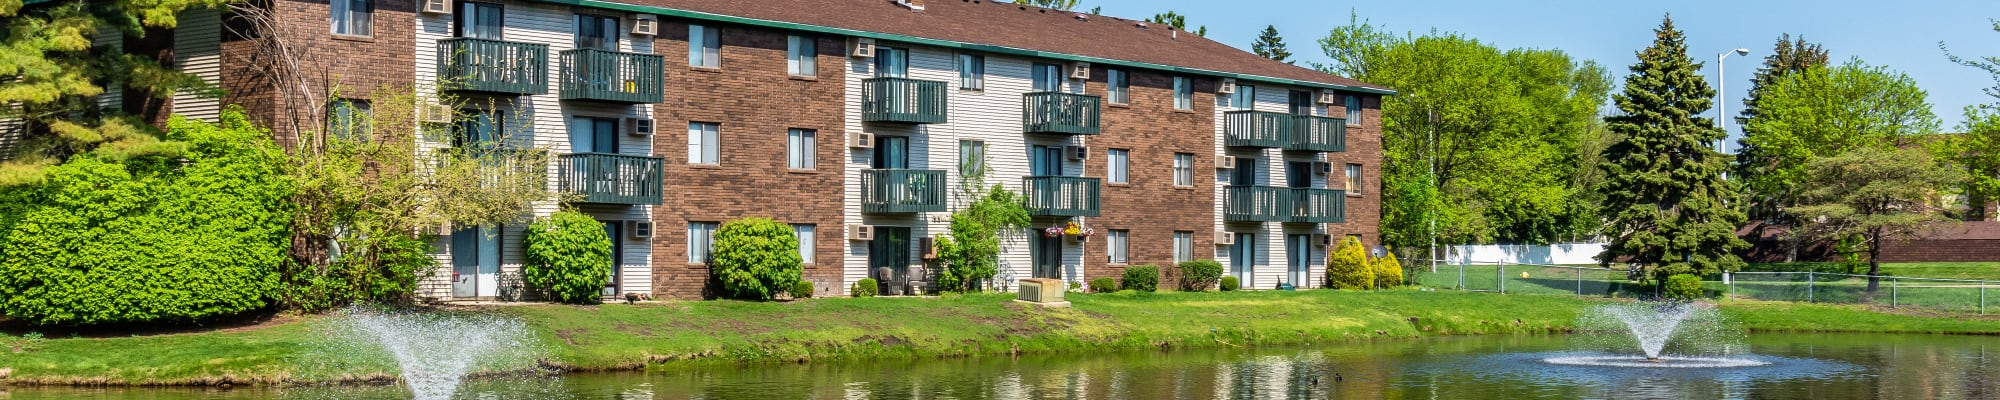 Schedule a Tour at Oldebrook Apartments in Wyoming, Michigan